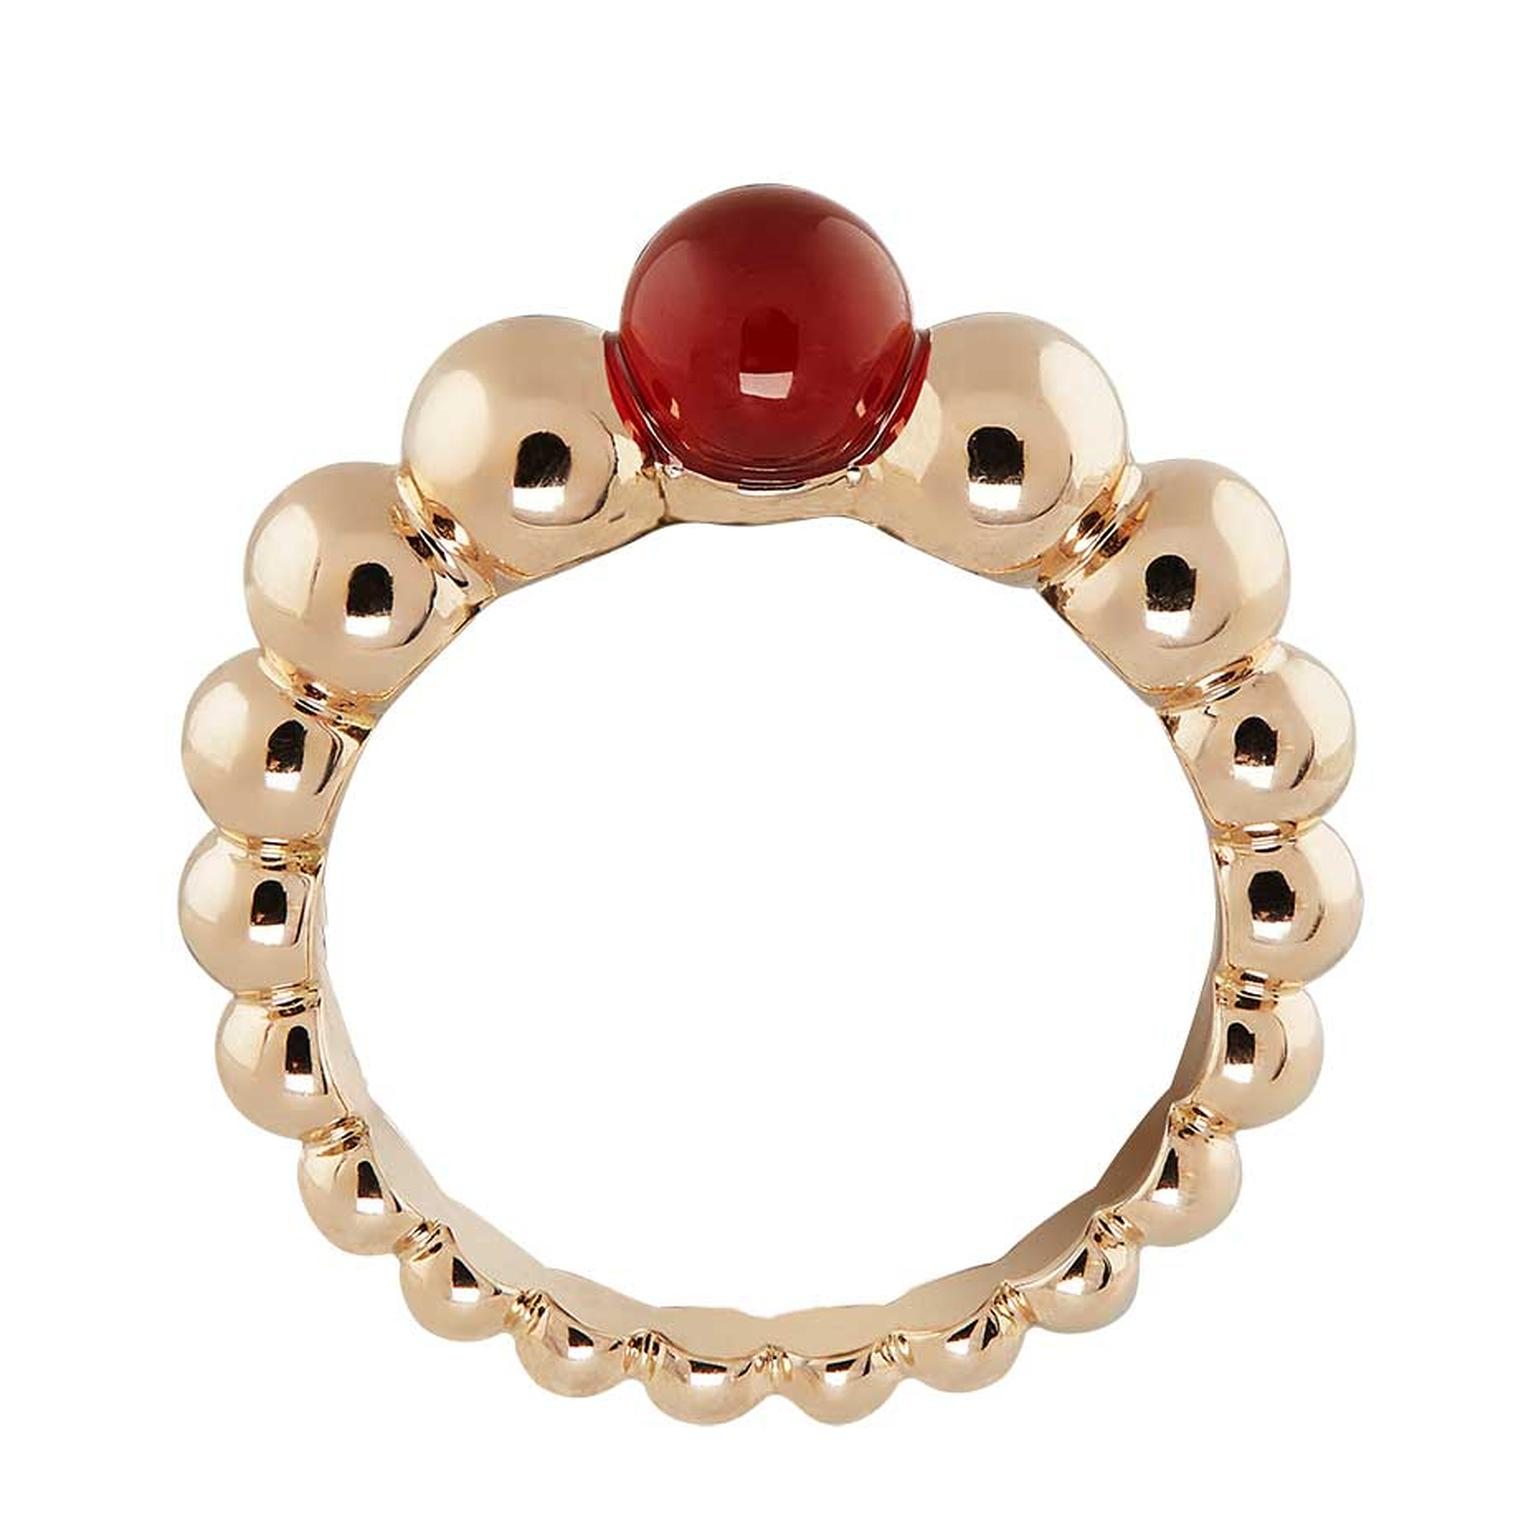 Van Cleef & Arpels Perlée Couleur ring in rose gold with a cabochon cornelian stone.